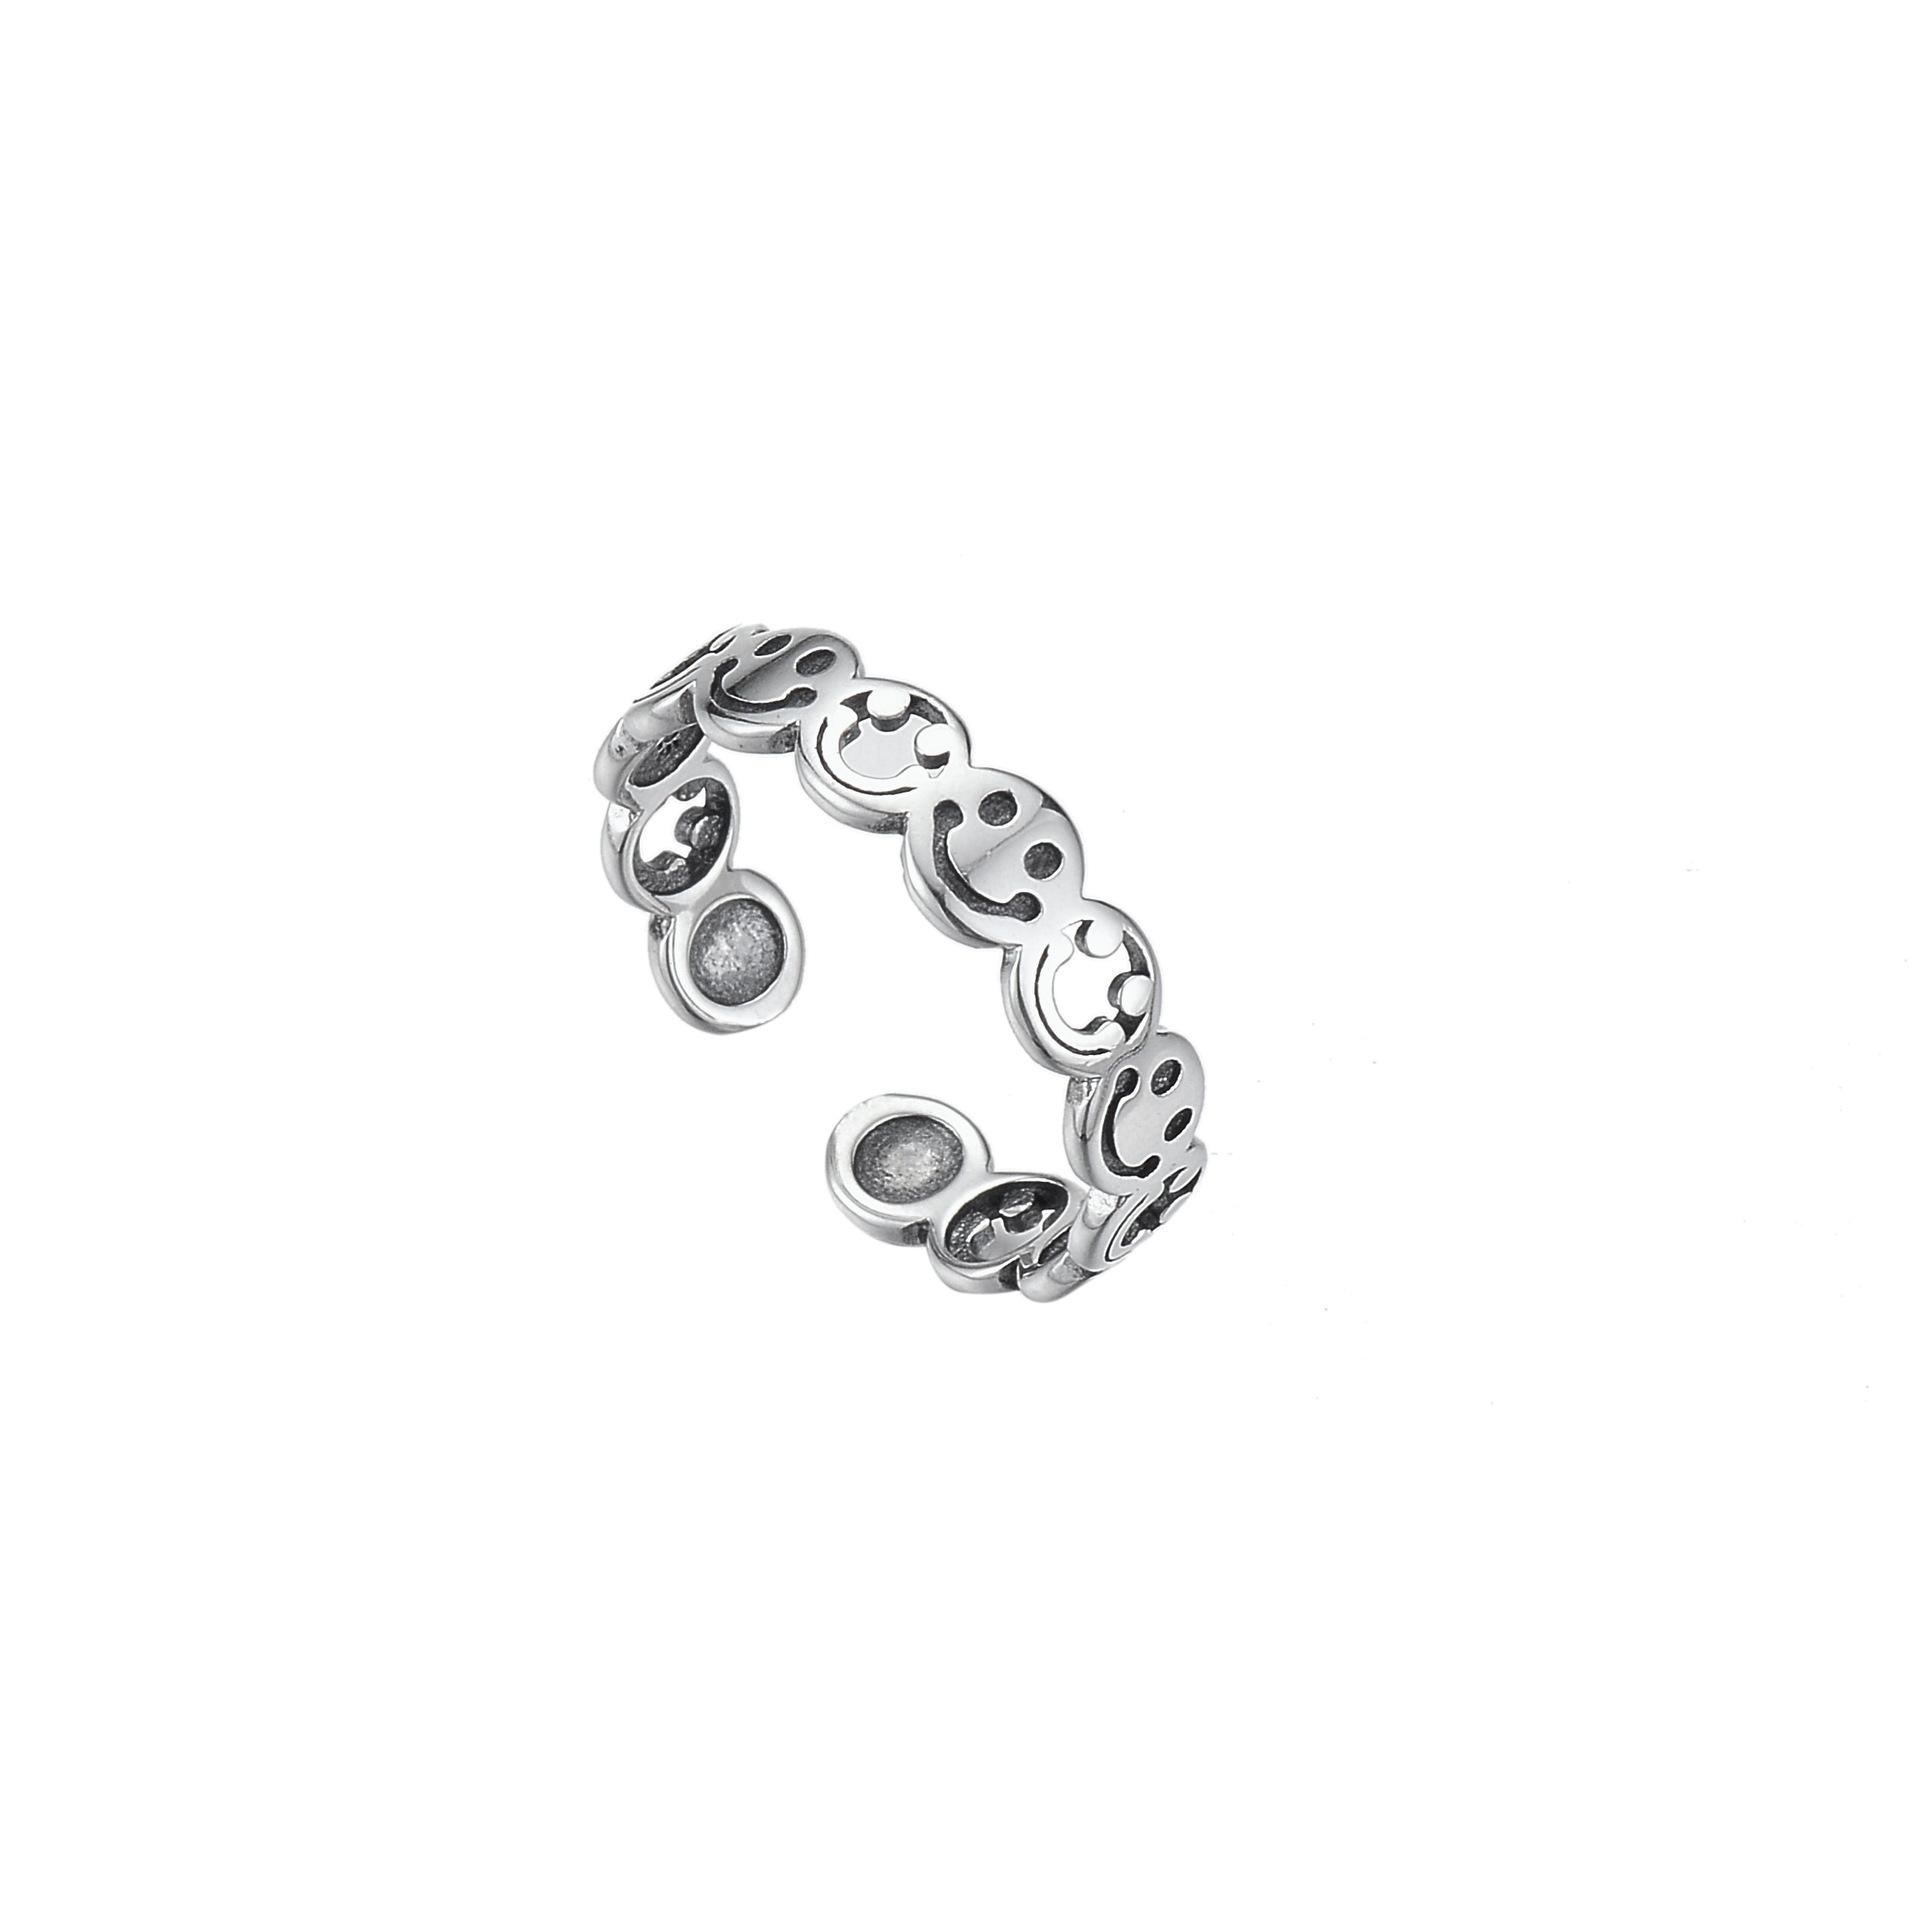 S925 Sterling Silver Retro Smile Couple Ring Smiley Open Adjustable Ring for Men and Women